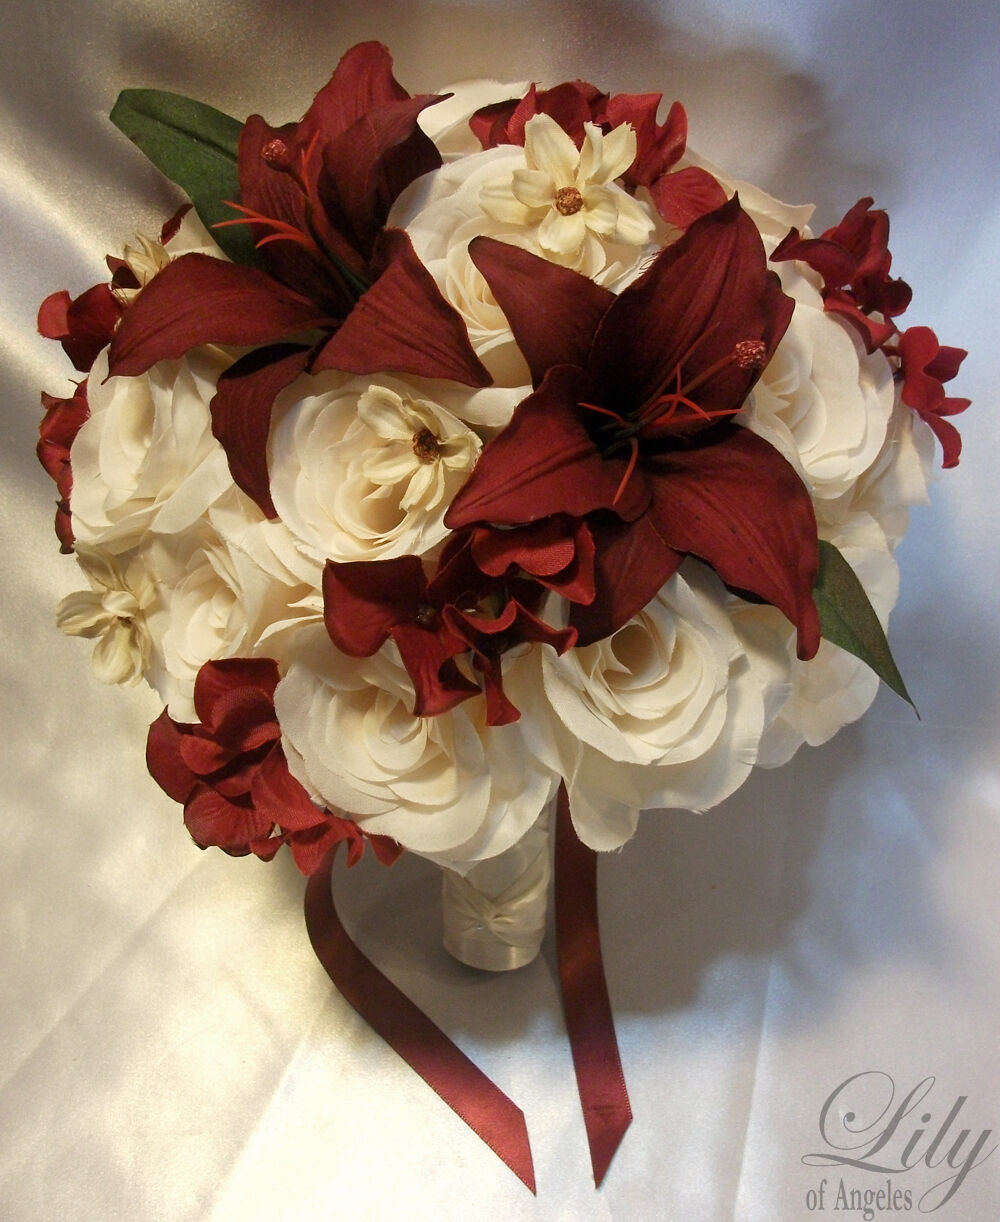 17pcs Wedding Bridal Bouquet Flowers Bride Bridesmaid Boutonniere Ivory Burgundy